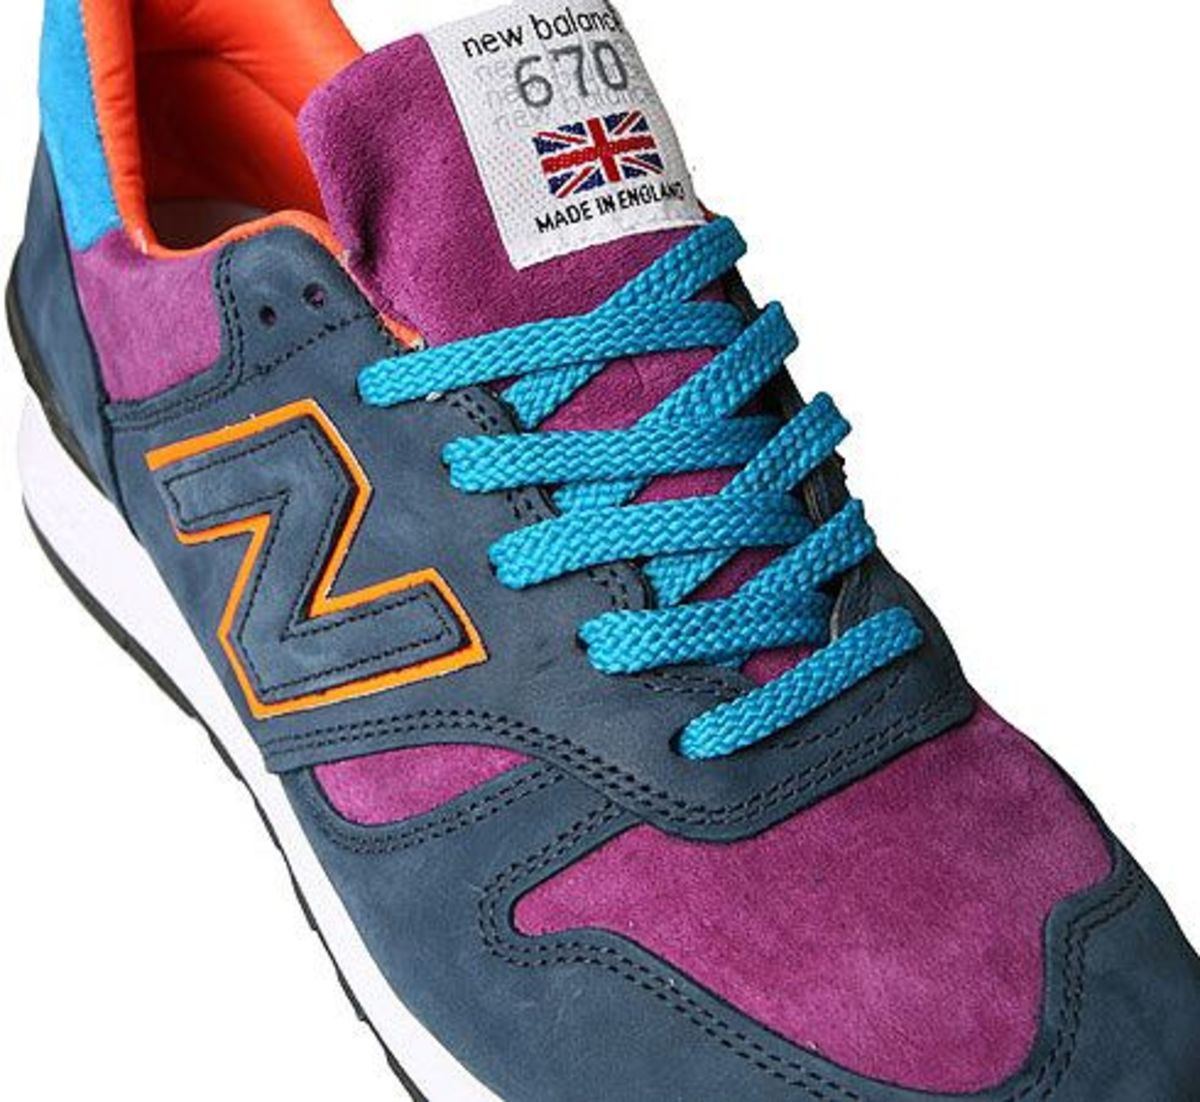 nb-woodwood-01.jpg